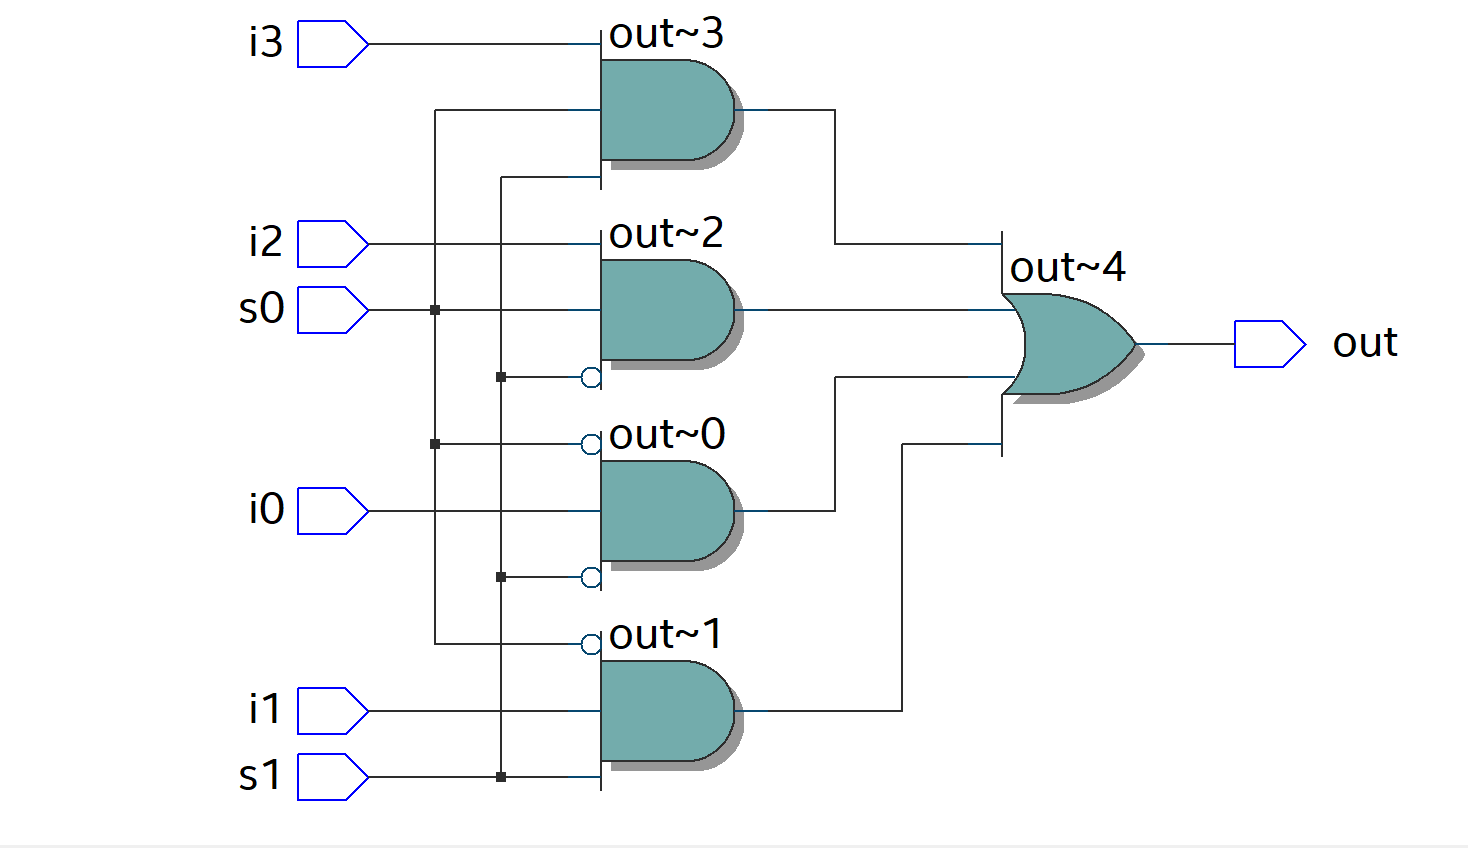 small resolution of 4 1 mux using logic equations and conditional operator verilog